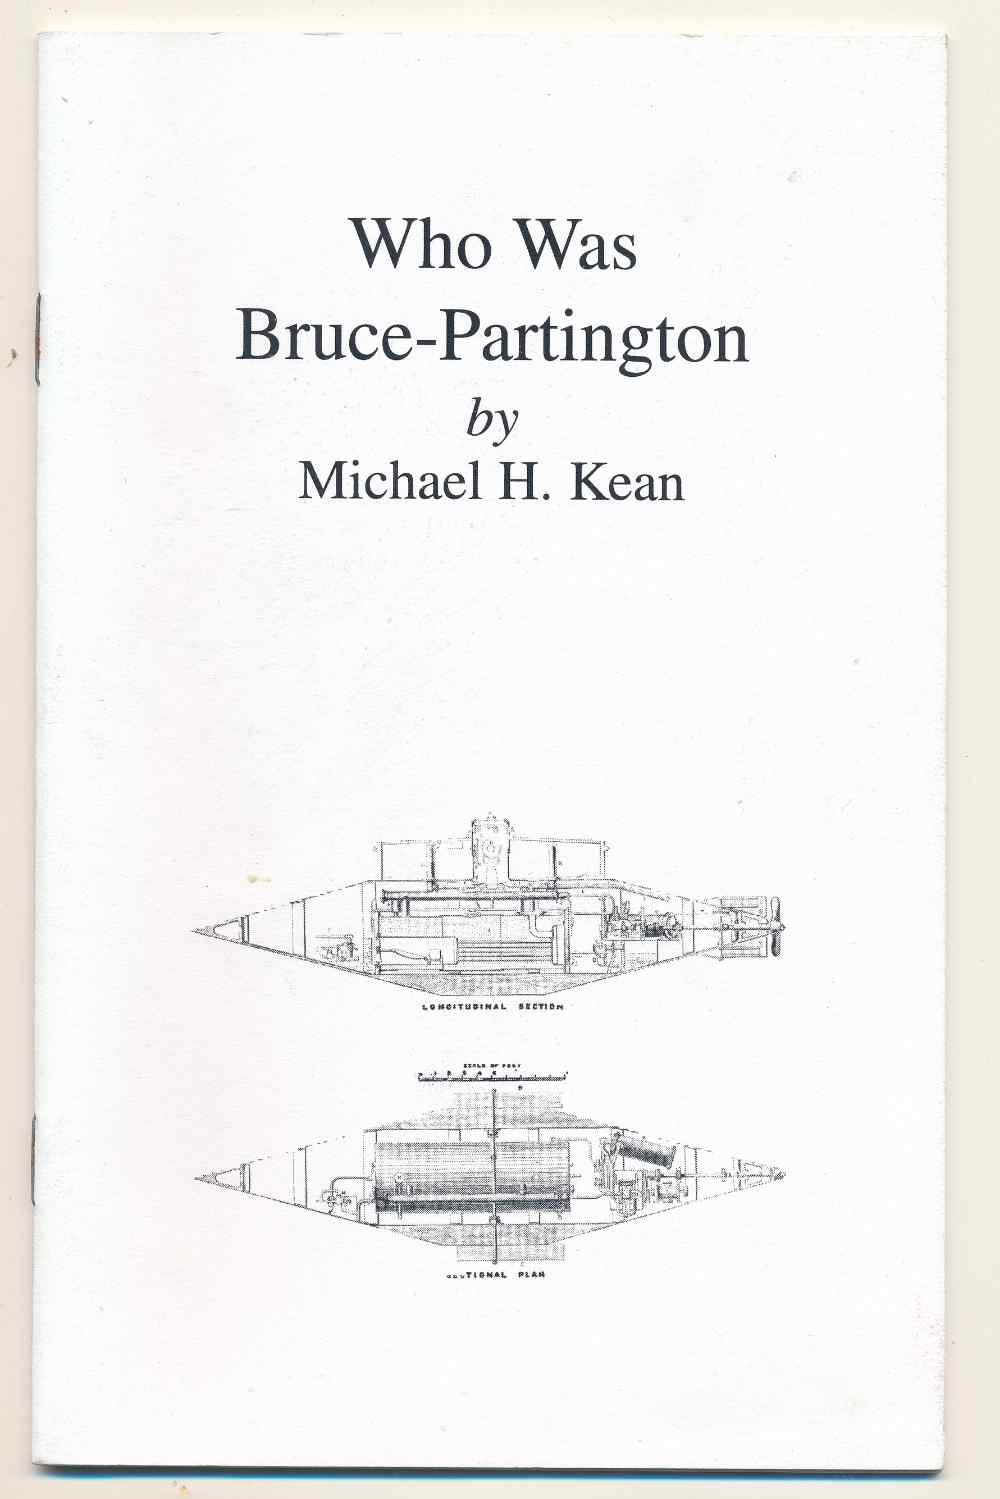 Who was Bruce-Partington?